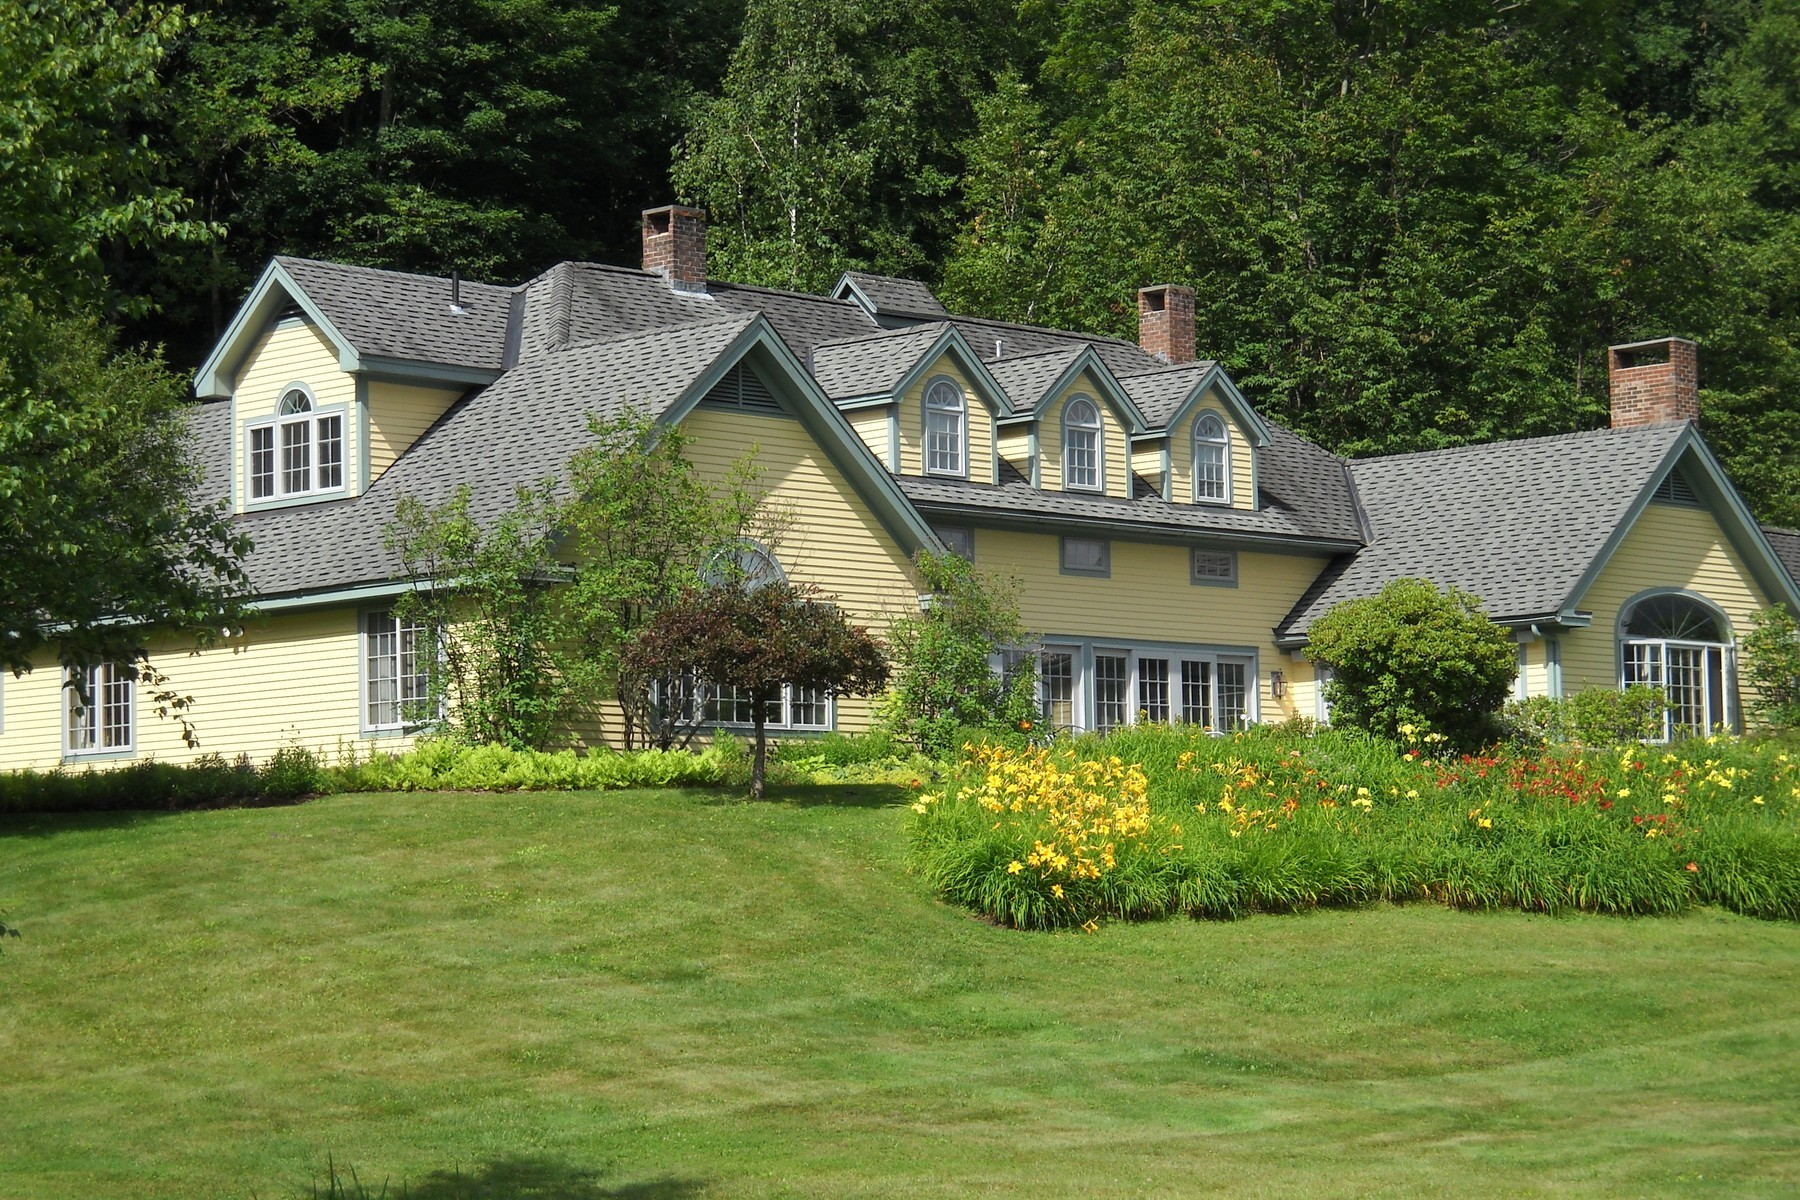 Casa Unifamiliar por un Venta en Elegant Contemporary on 72 Acres 208 Lower Hollow Rd Dorset, Vermont, 05251 Estados Unidos